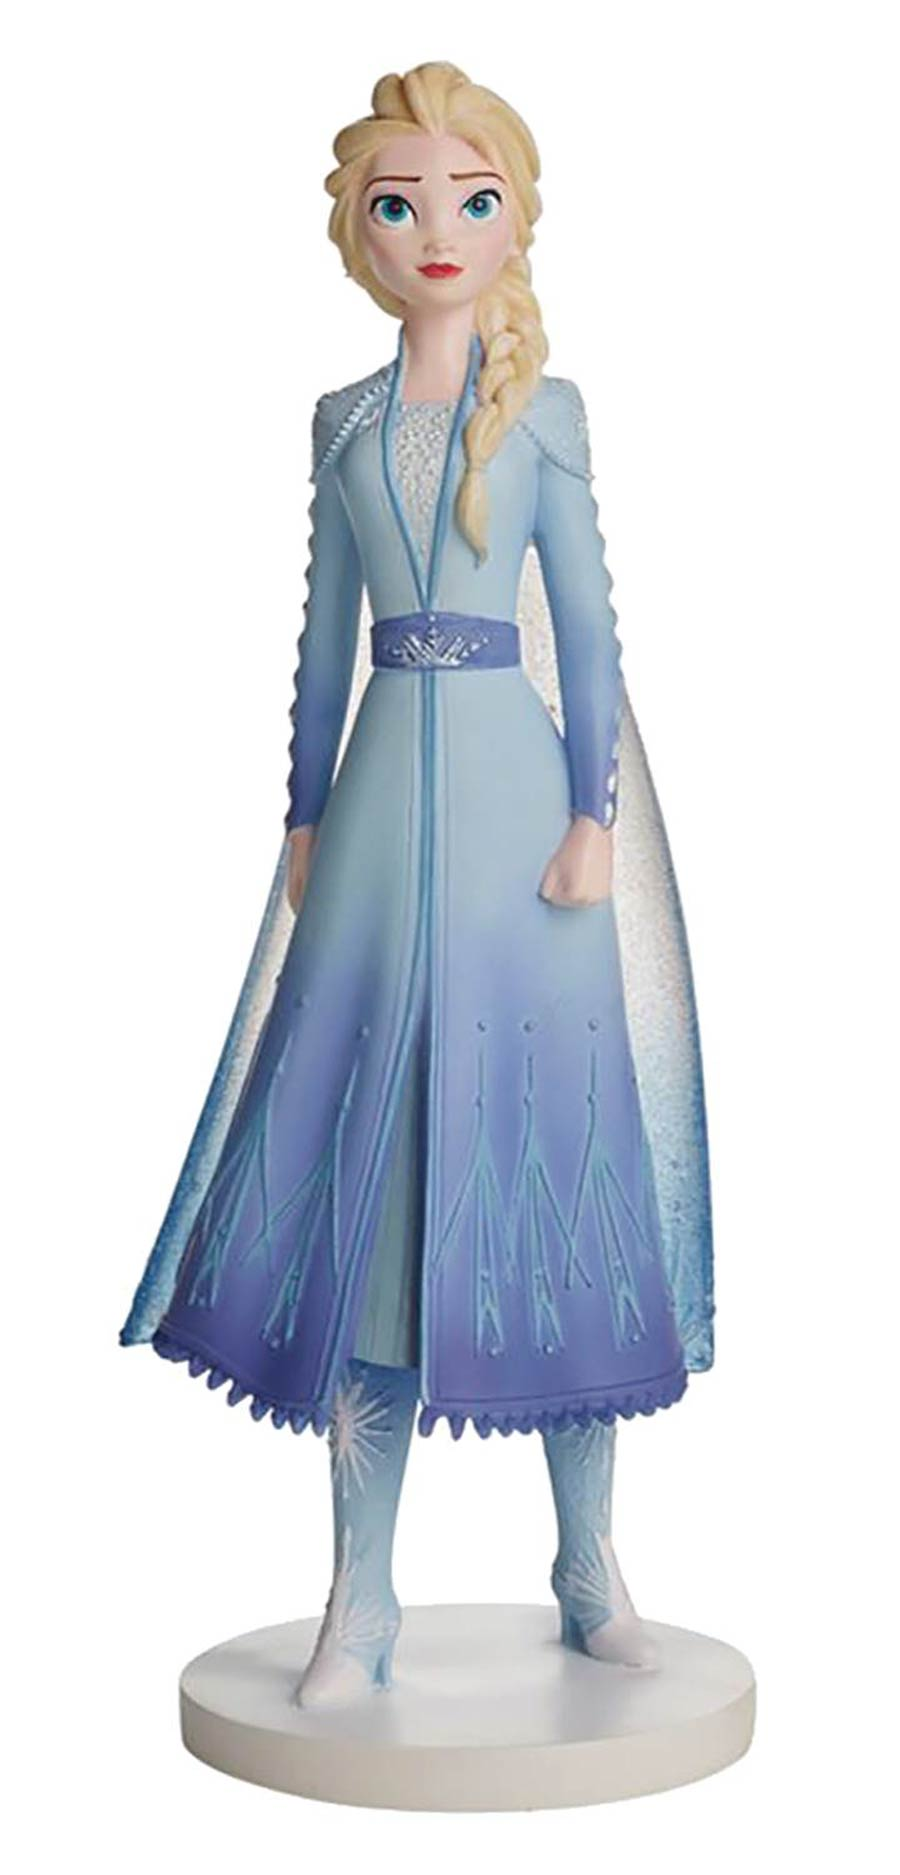 Disney Showcase Frozen 2 Elsa 8.3-Inch Statue